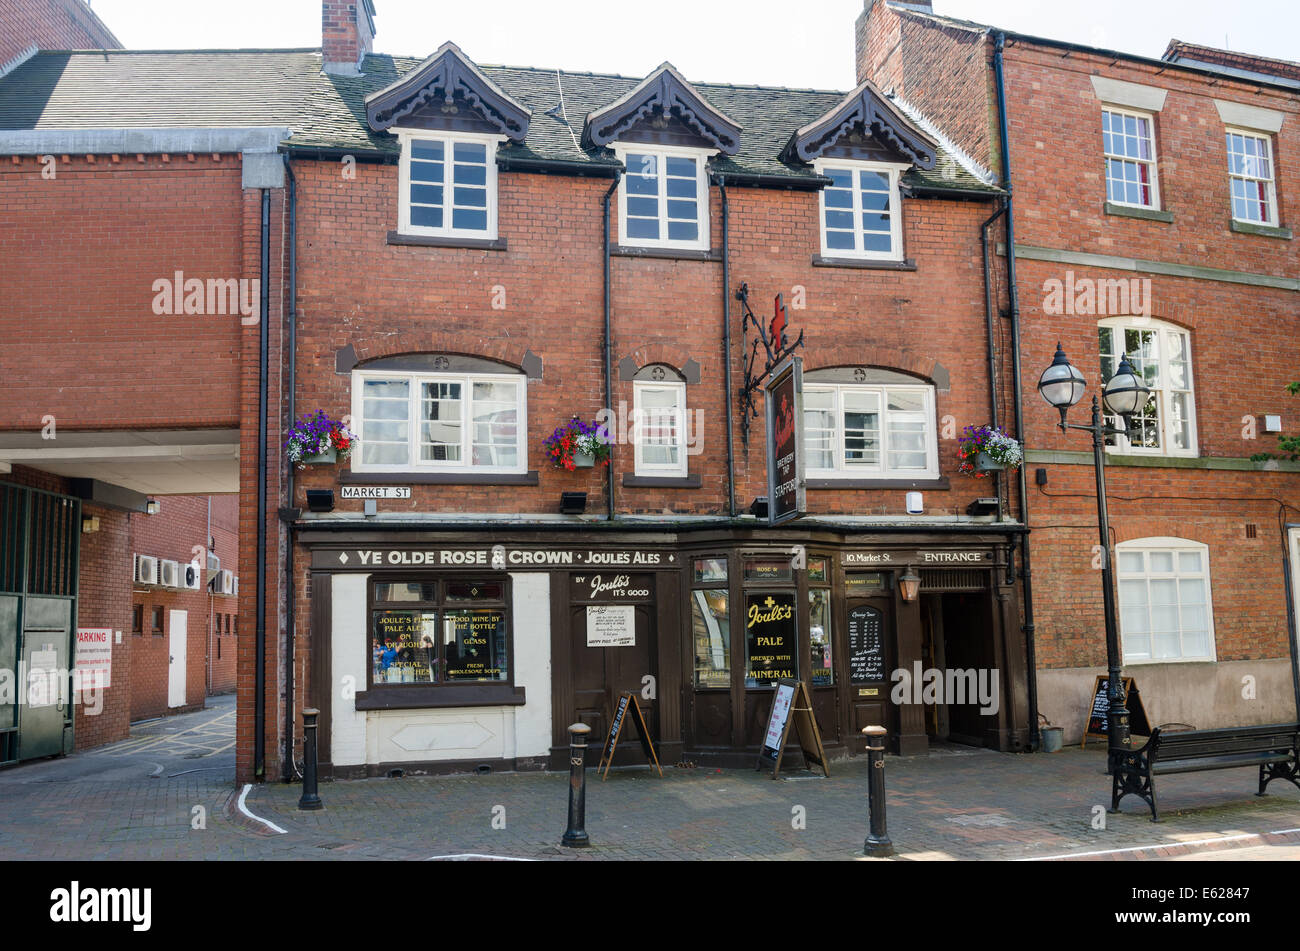 Ye Olde Rose and Crown public house in Market Street, Stafford run by Joule's Brewery - Stock Image